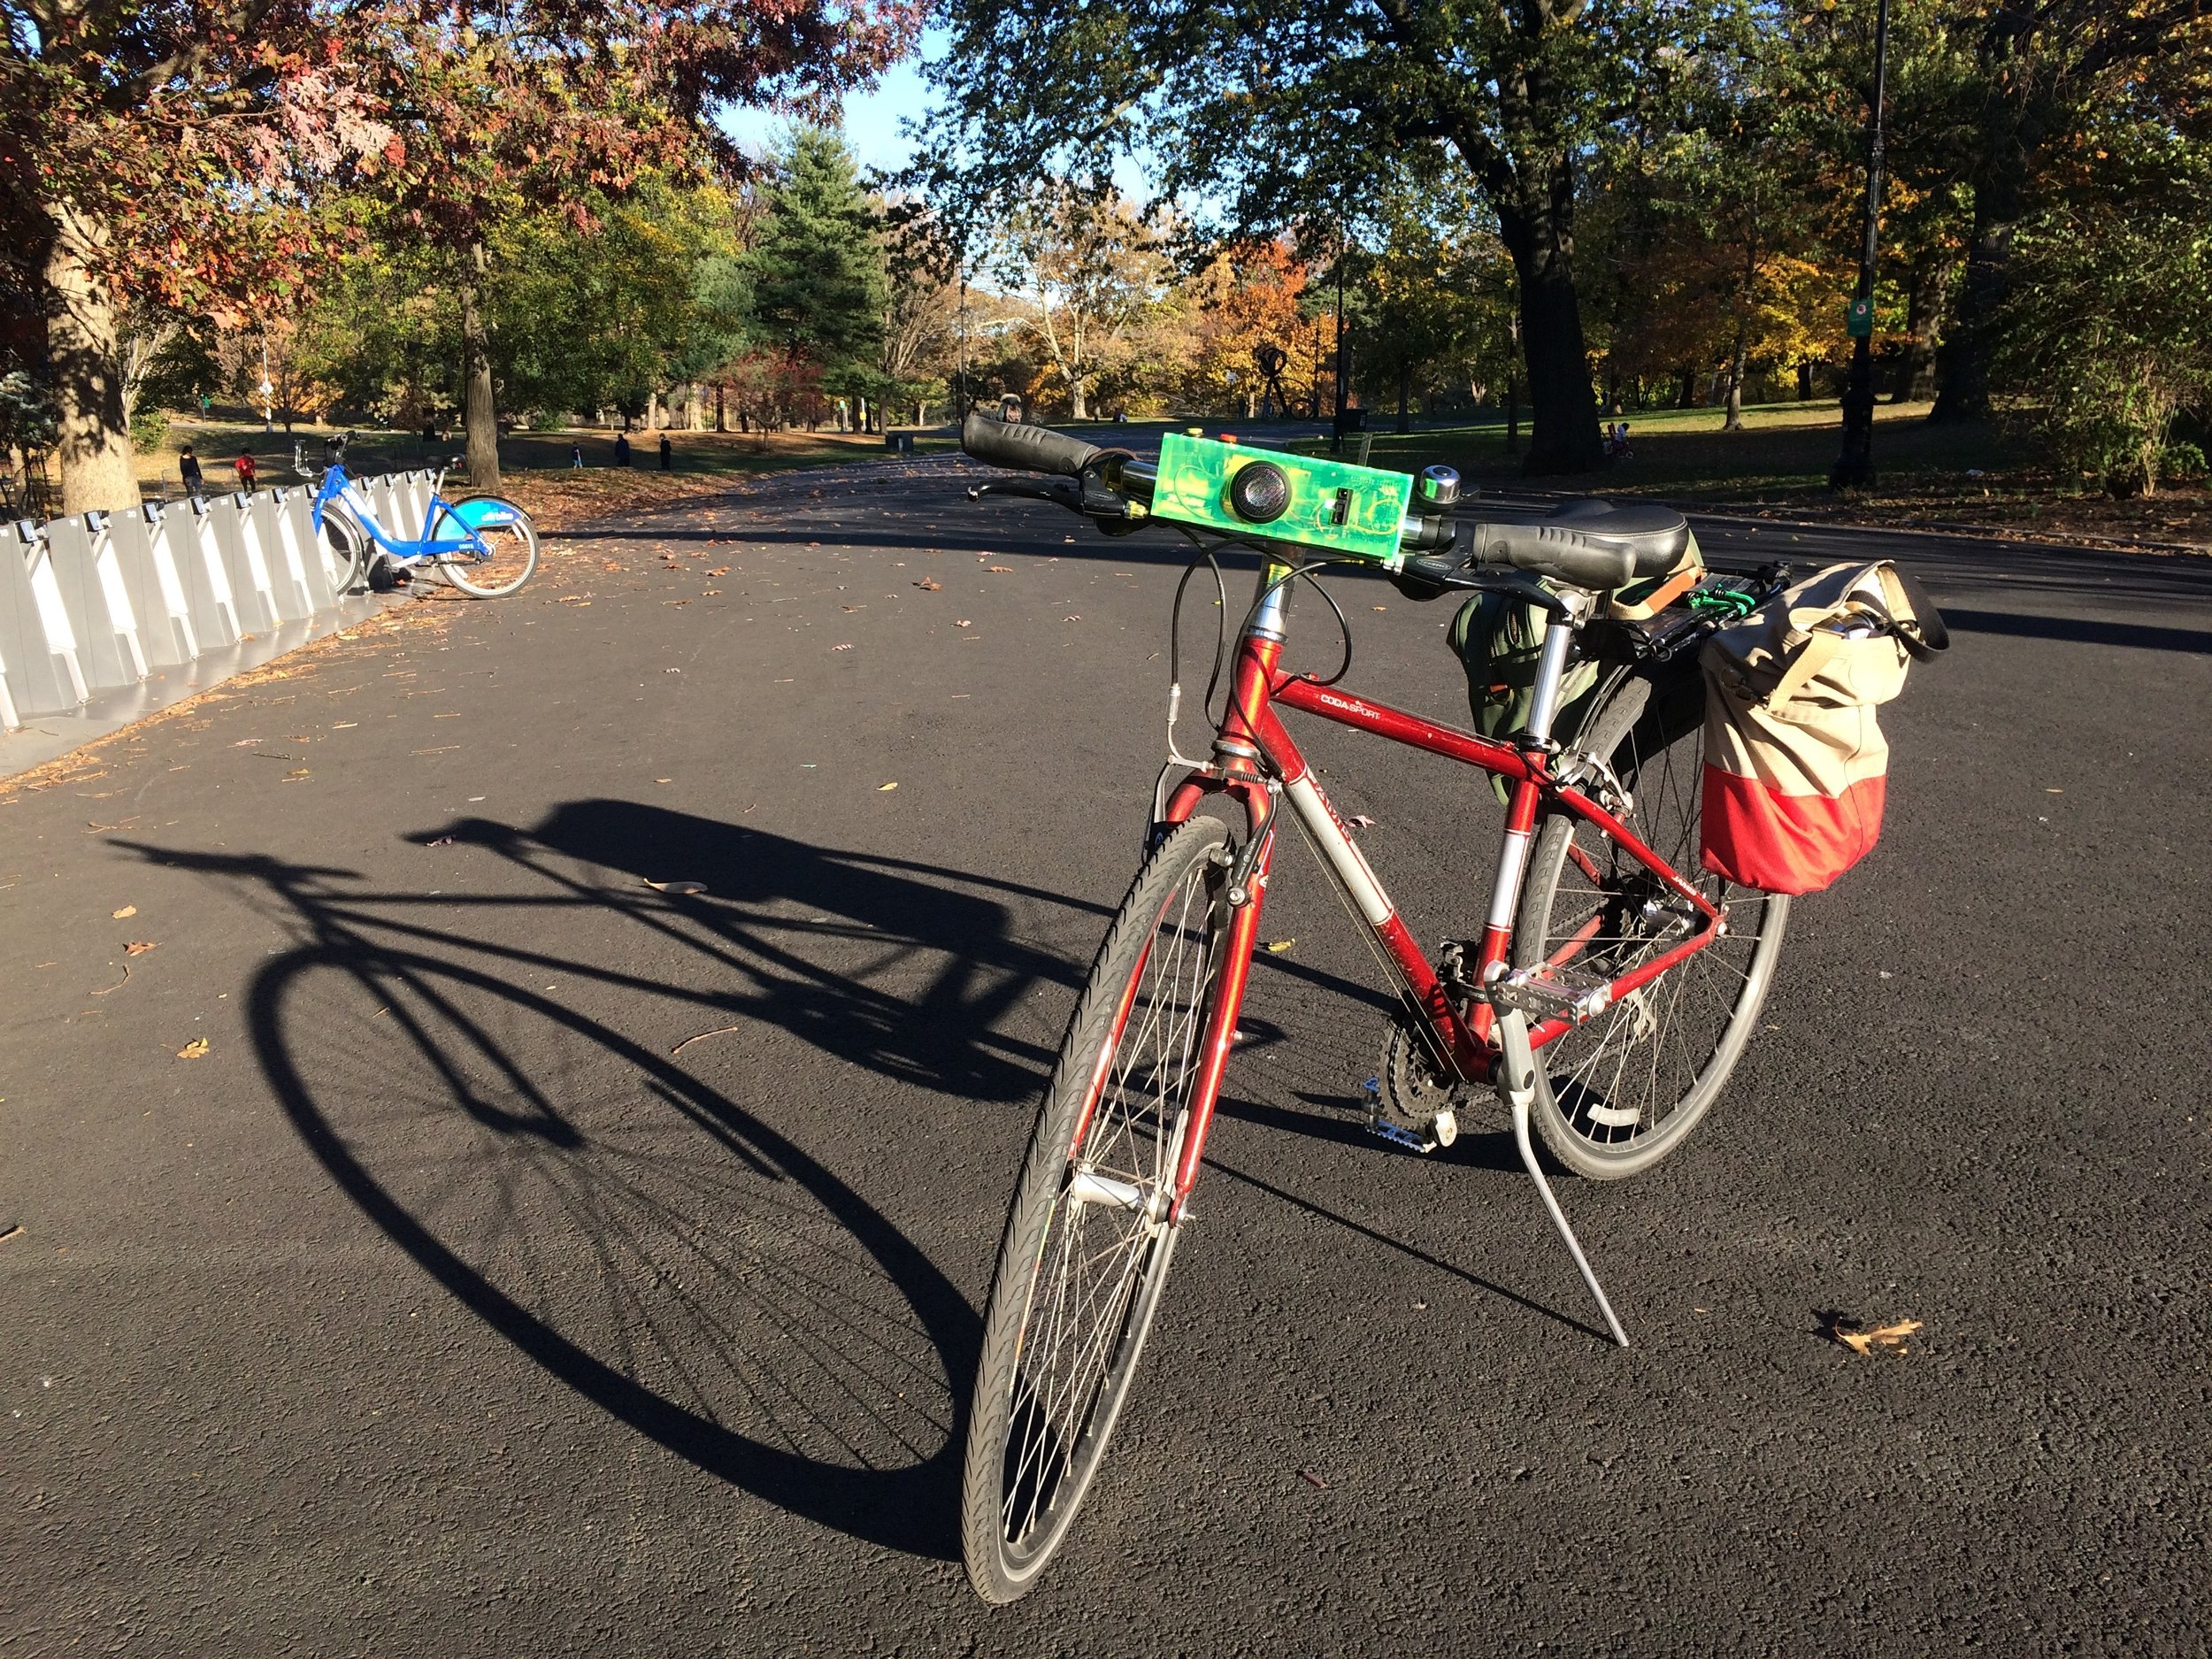 Bells & Yells - Ensuring safety and composure for urban cyclists